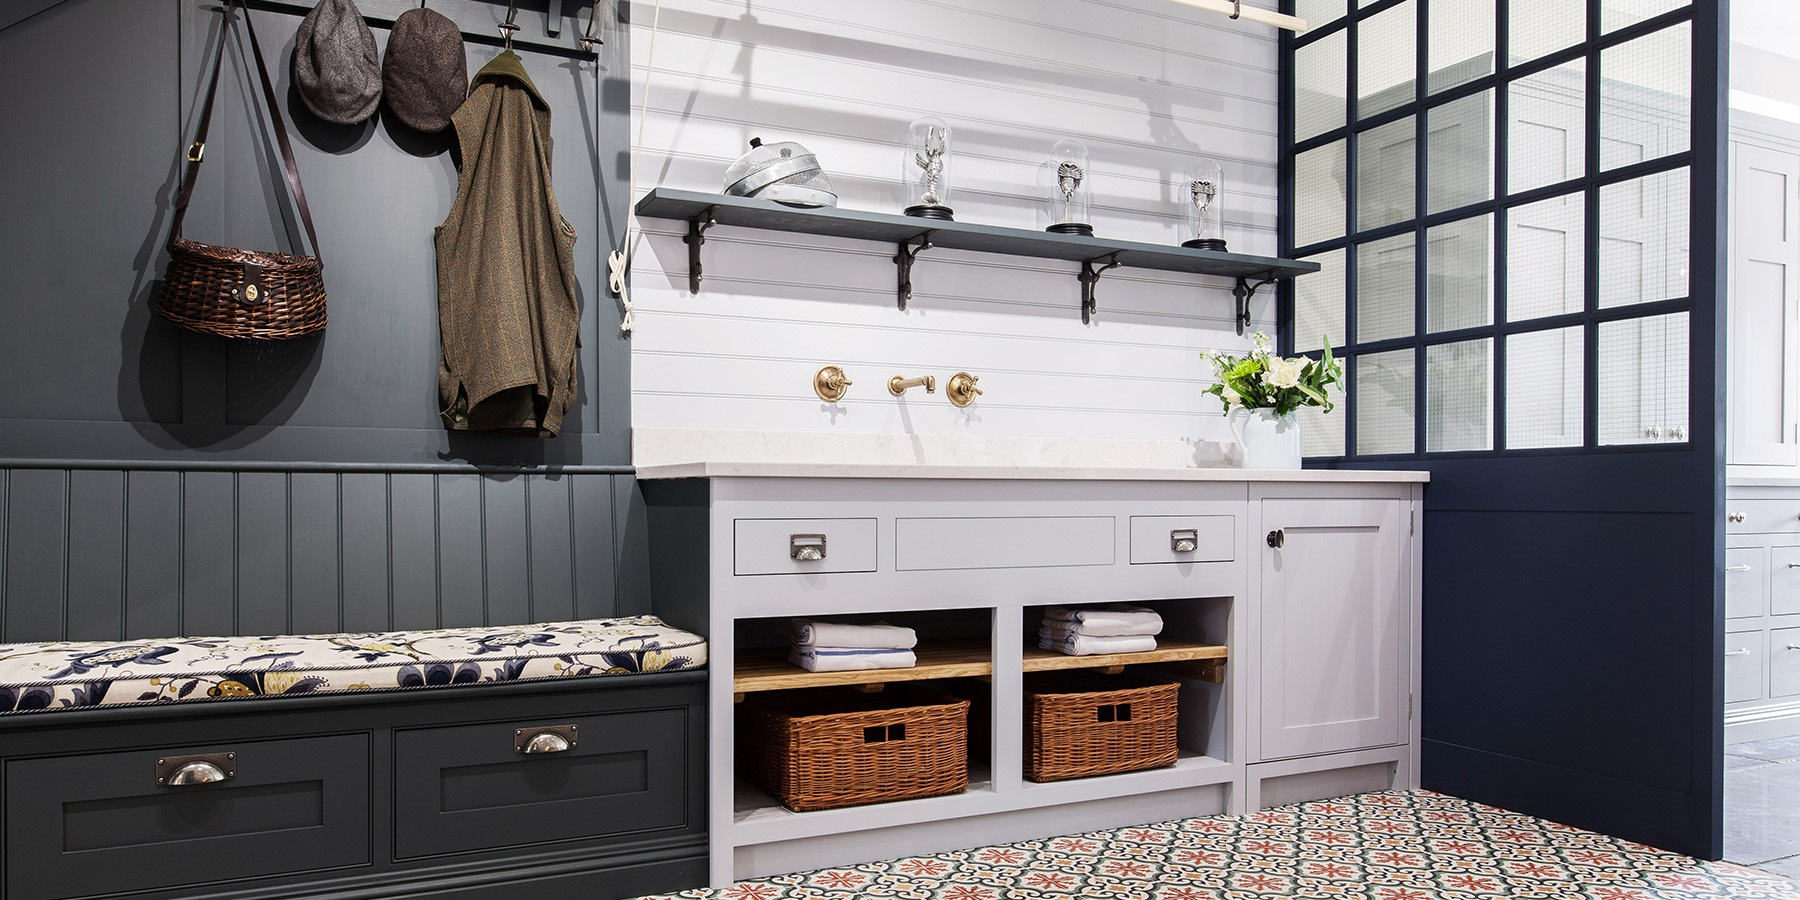 Handmade Bootroom & Utility Room Furniture  - Burlanes bespoke utility room and bootroom storage solutions, with banquette seating and coat hooks.